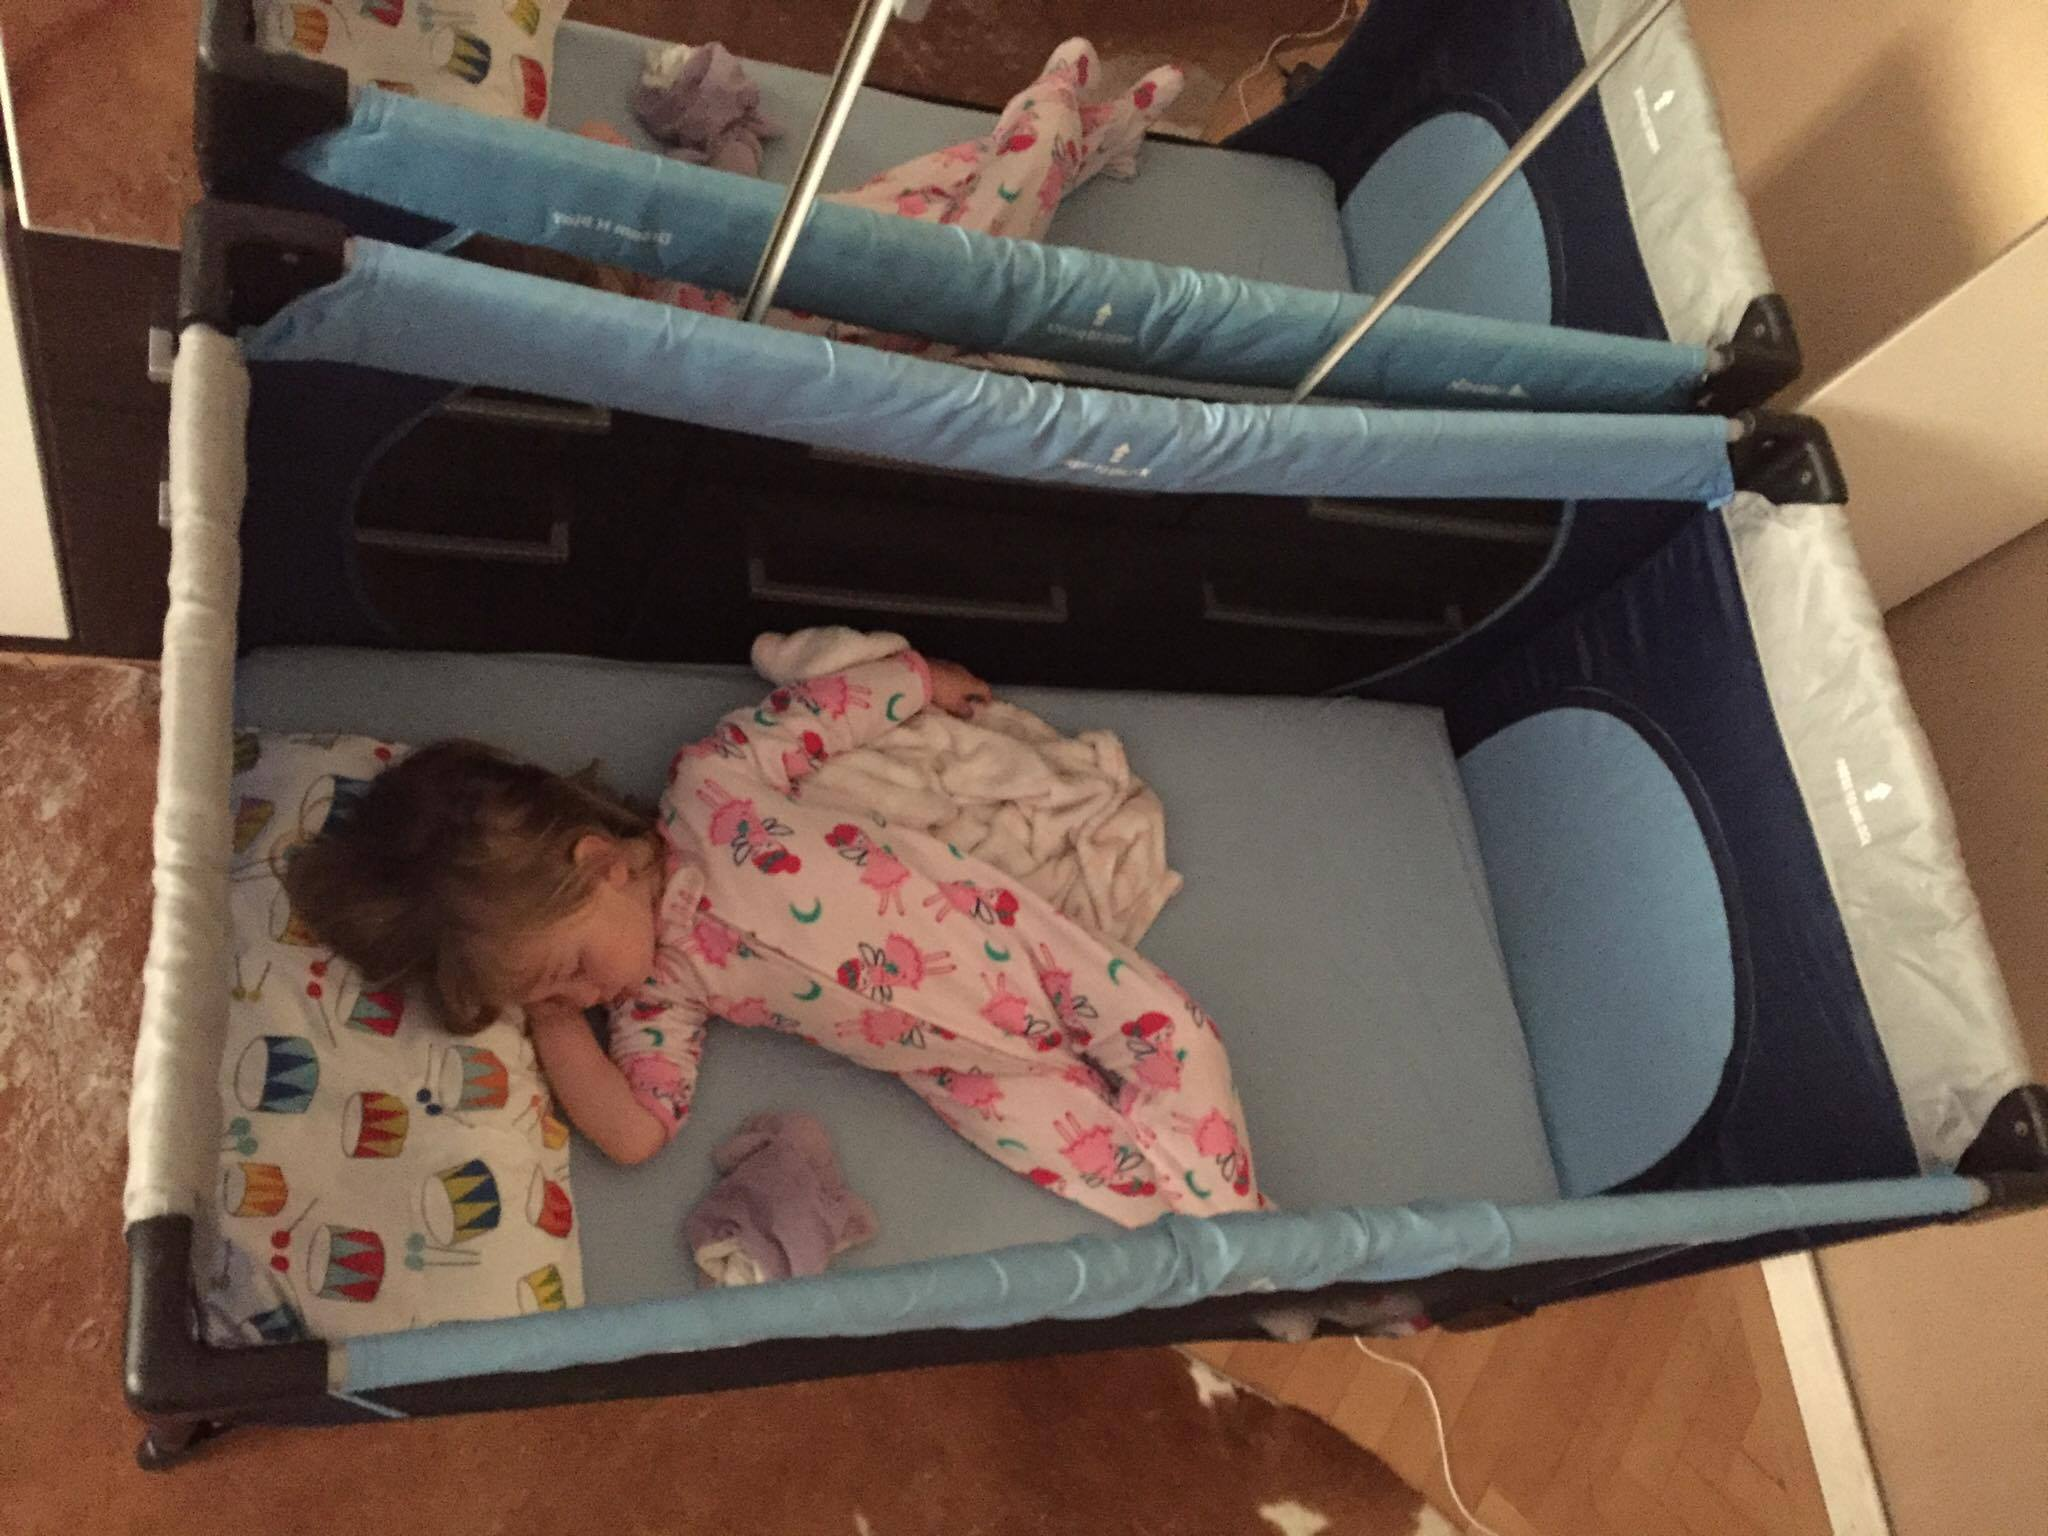 OUr daughter (2 years old) sleeping in an extended pack n play -- she has So much room